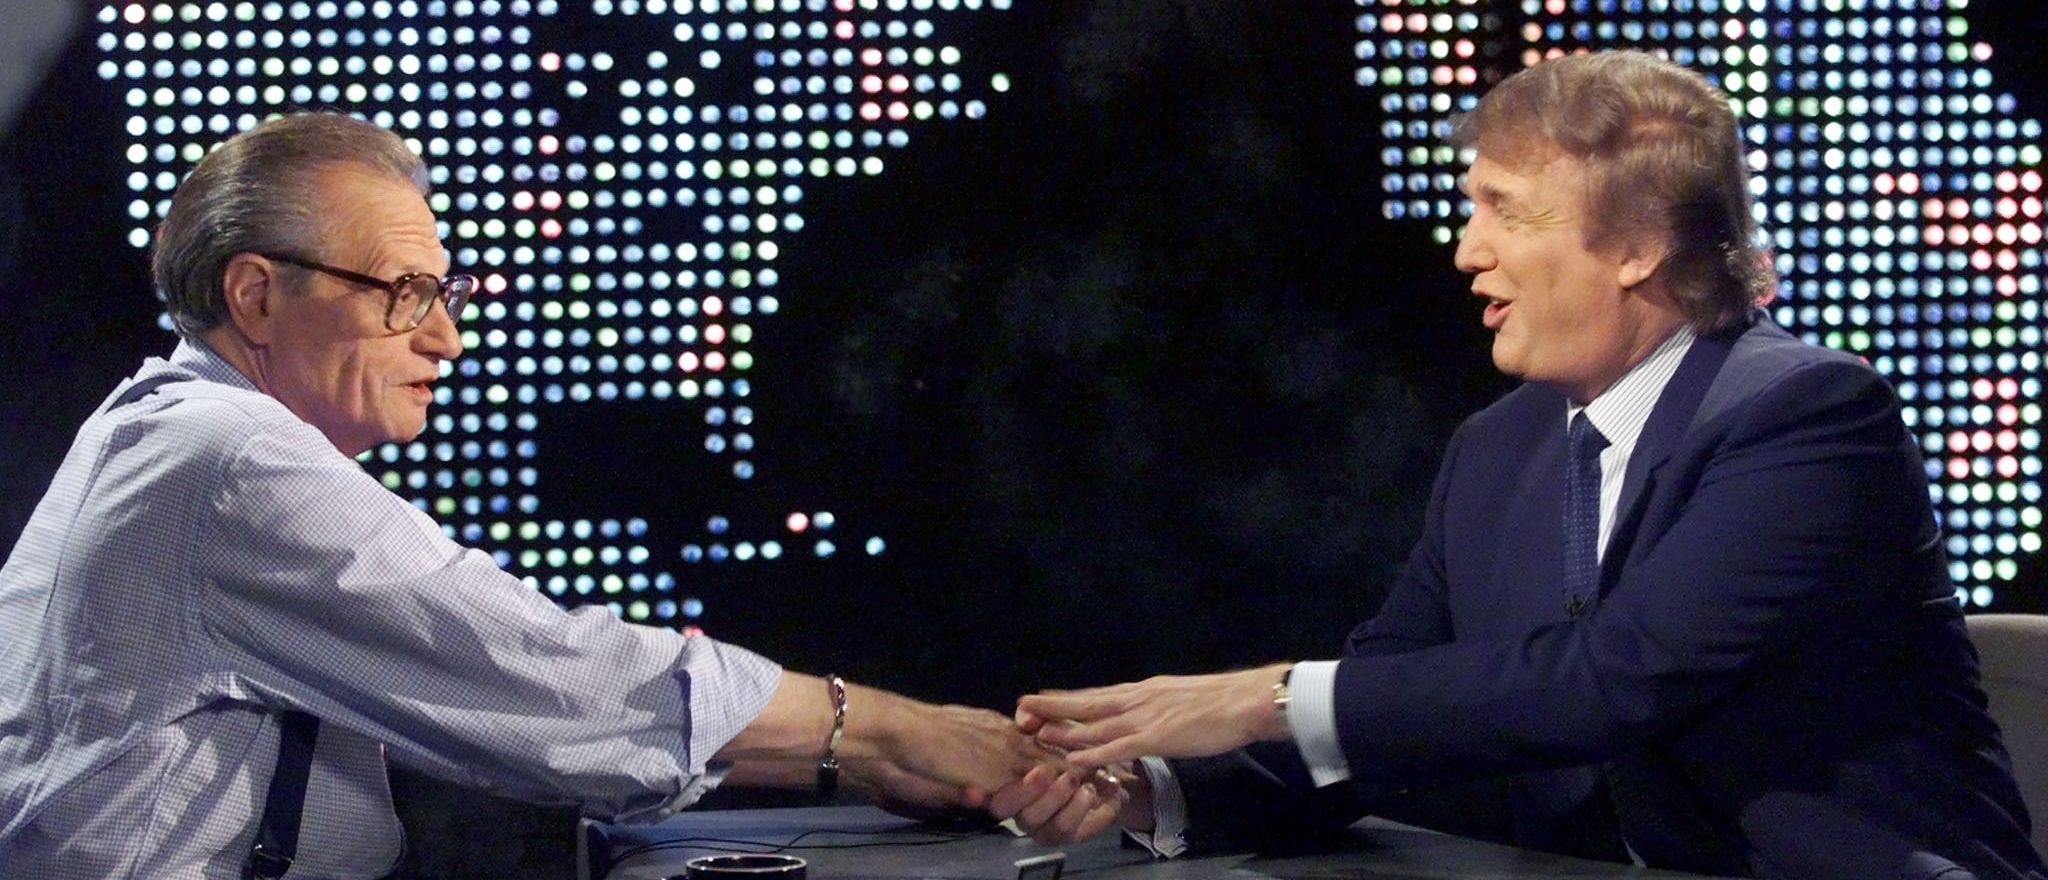 Billionaire real estate developer Donald Trump (R) shakes hands with host Larry King after taping a segment of King's CNN talk show, in New York October 7. Trump told King that he was moving toward a possible bid for the United States presidency with the formation of a presidential exploratory committee. Trump said he plans to confer later October 7 with Minnesota Governor Jesse Ventura, who has been courting him for months to seek the presidential nomination of the Reform Party.  PM/HB - RTRRCIO